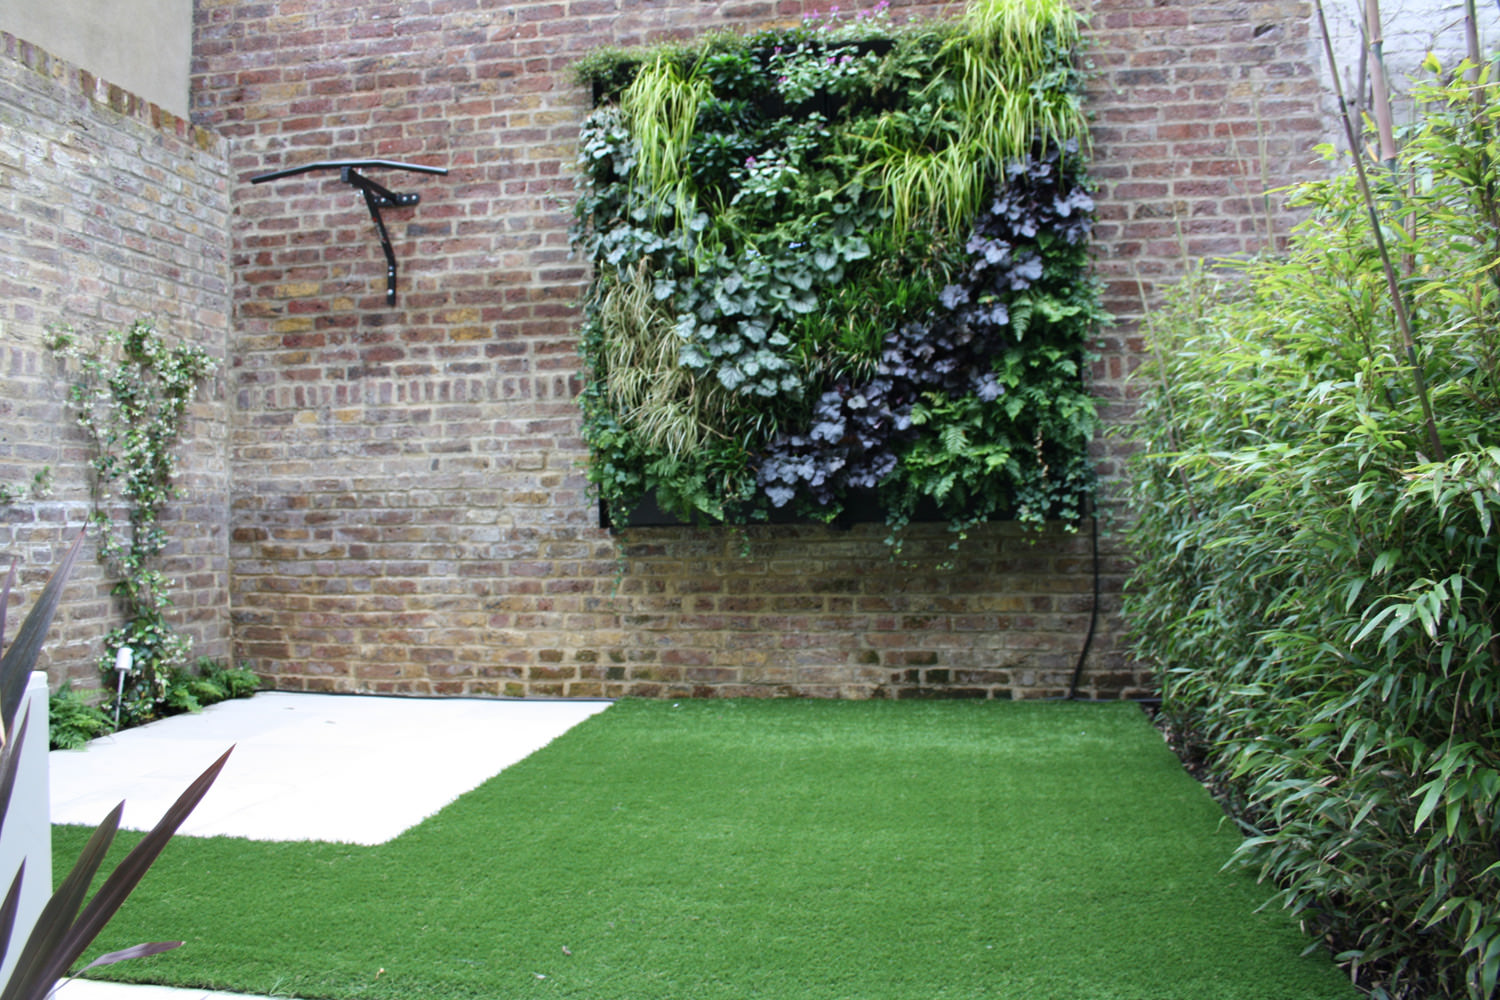 Top 10 london garden designs garden club london for Great small garden designs